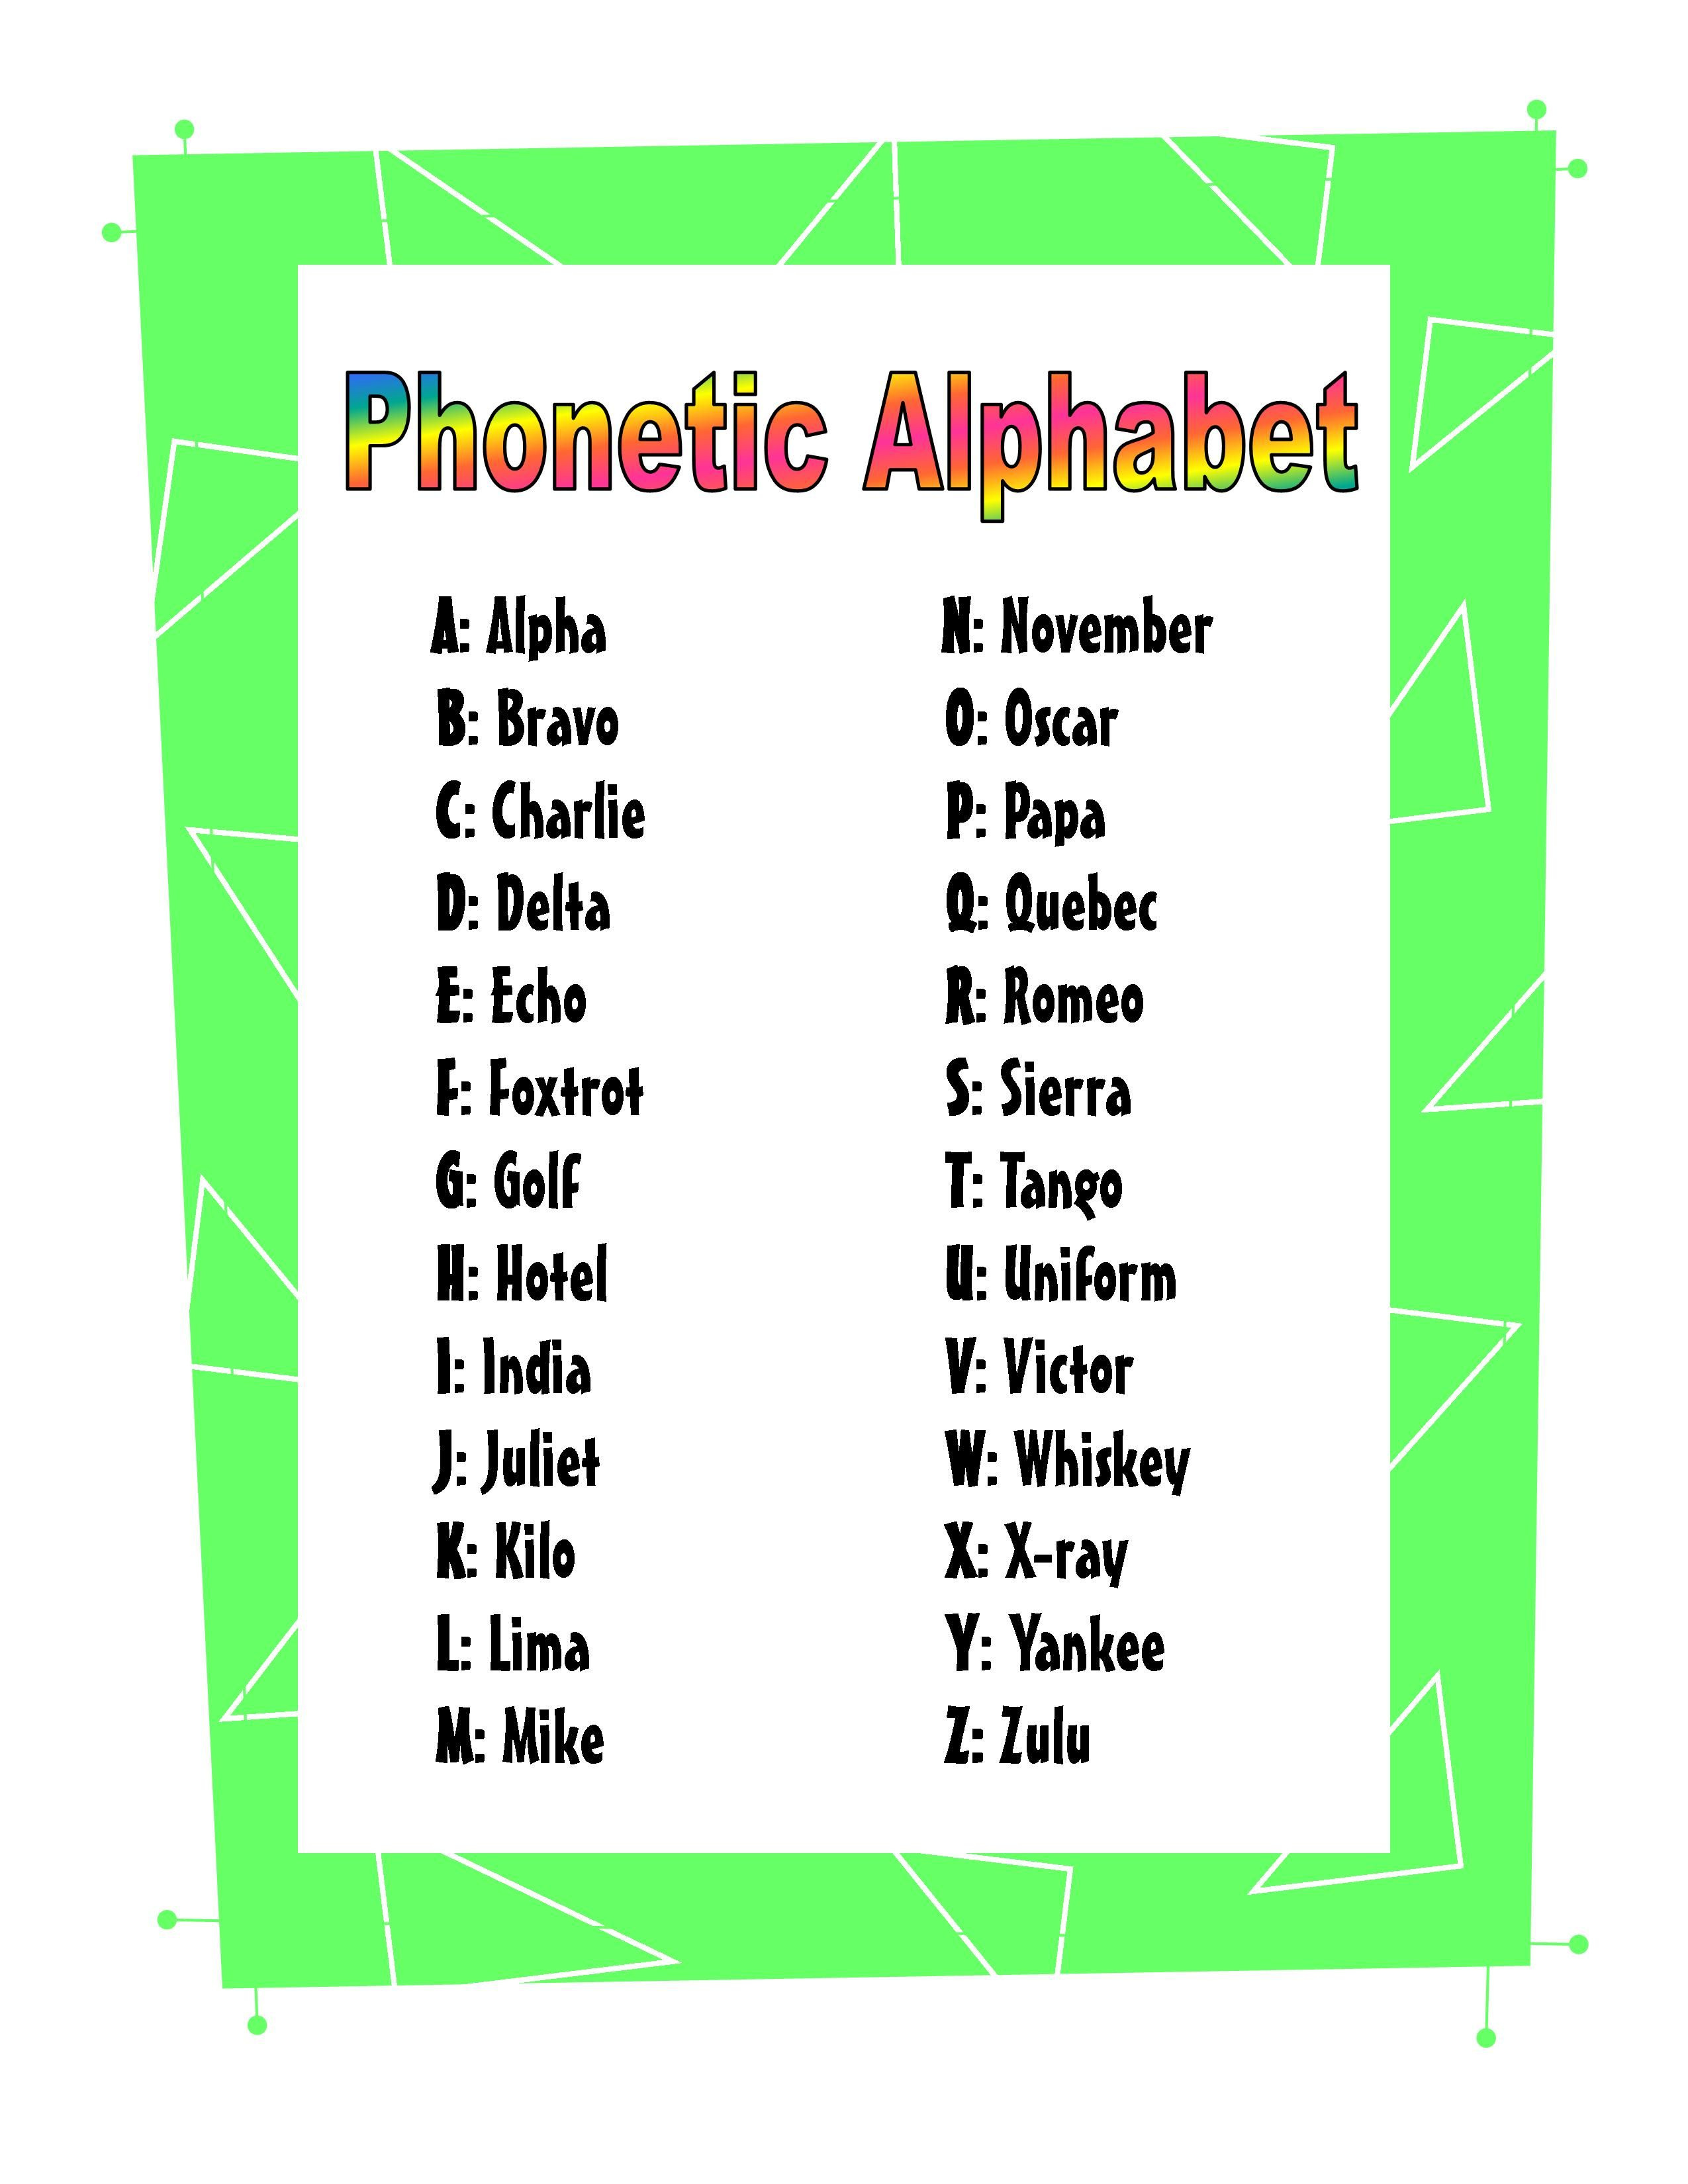 nato phonetic alphabet chart pdf